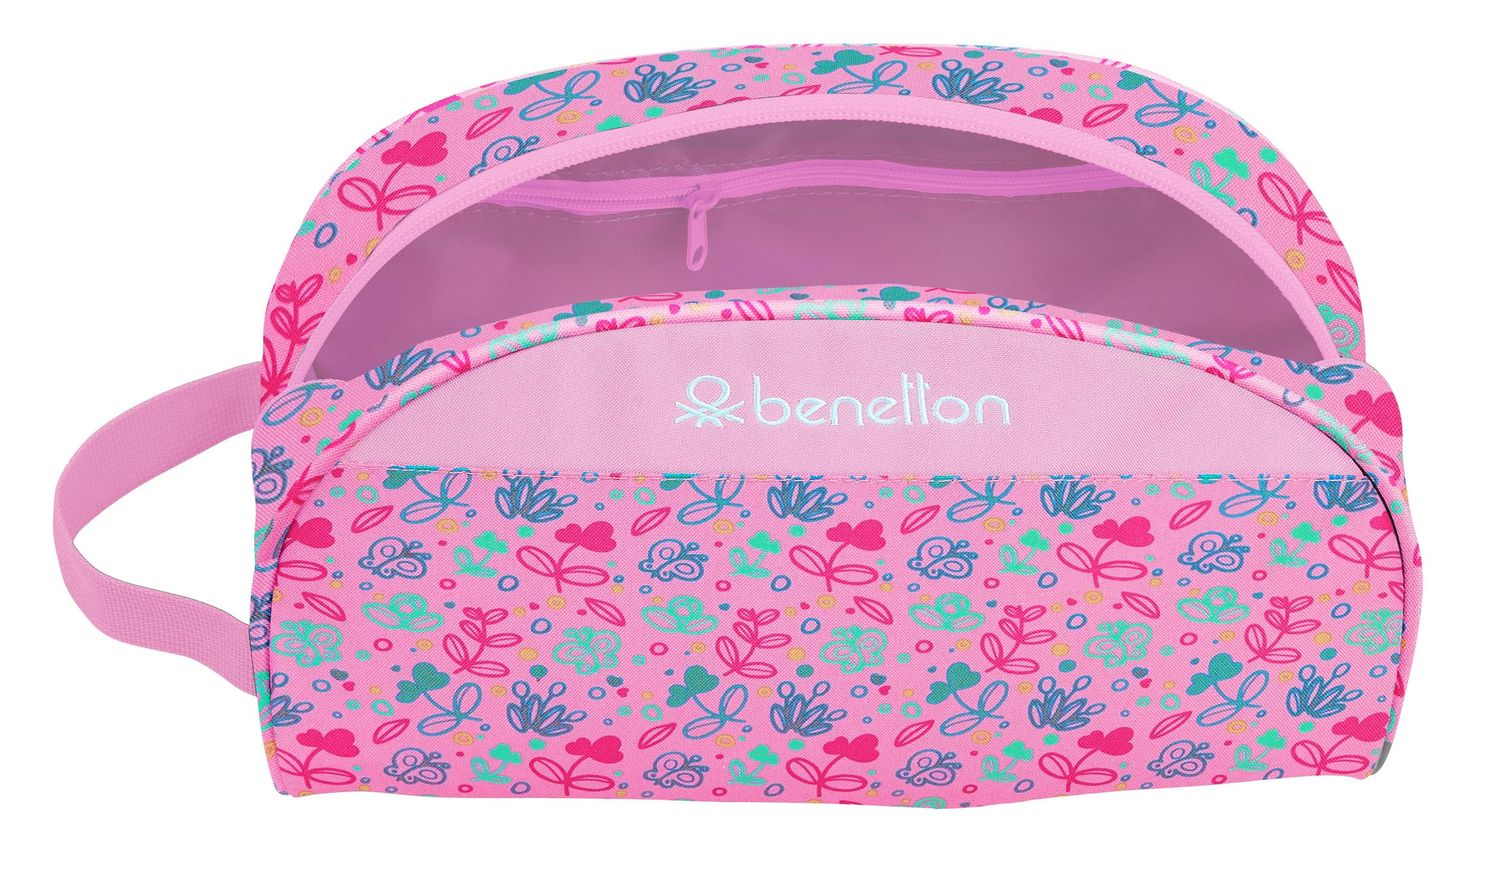 BENETTON Pink Butterflies Toiletry Bag Beauty Case – image 3